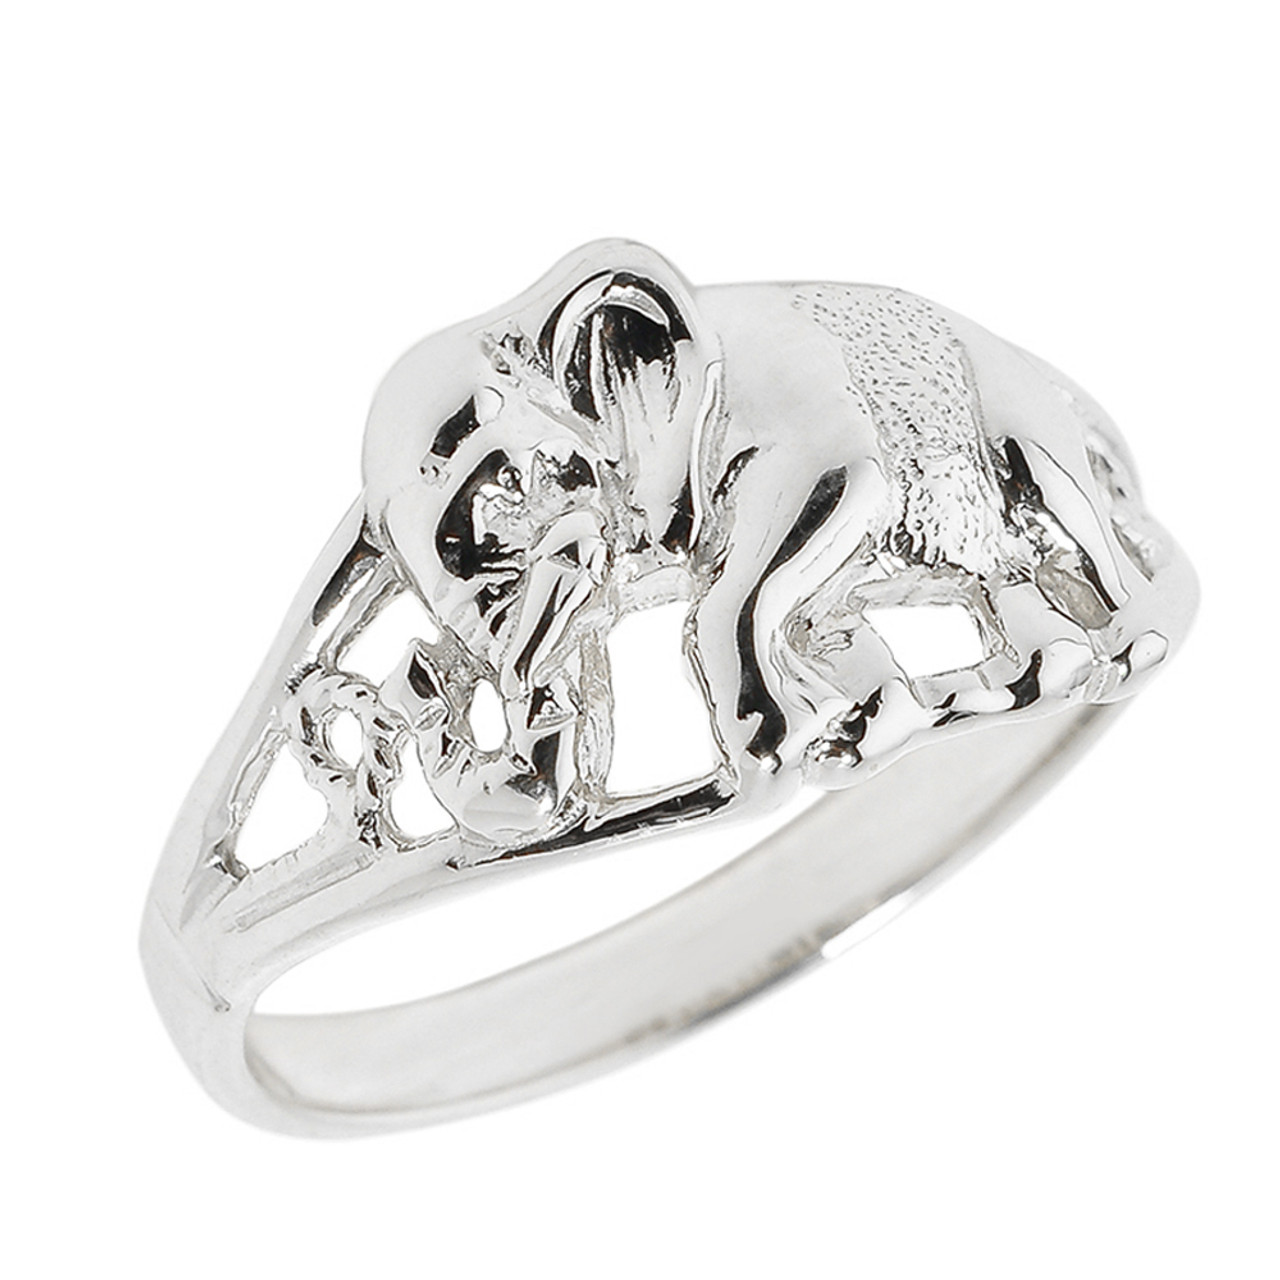 engagement spinner elephant launch gms band designer inspired silver tjc ring wt rings sterling